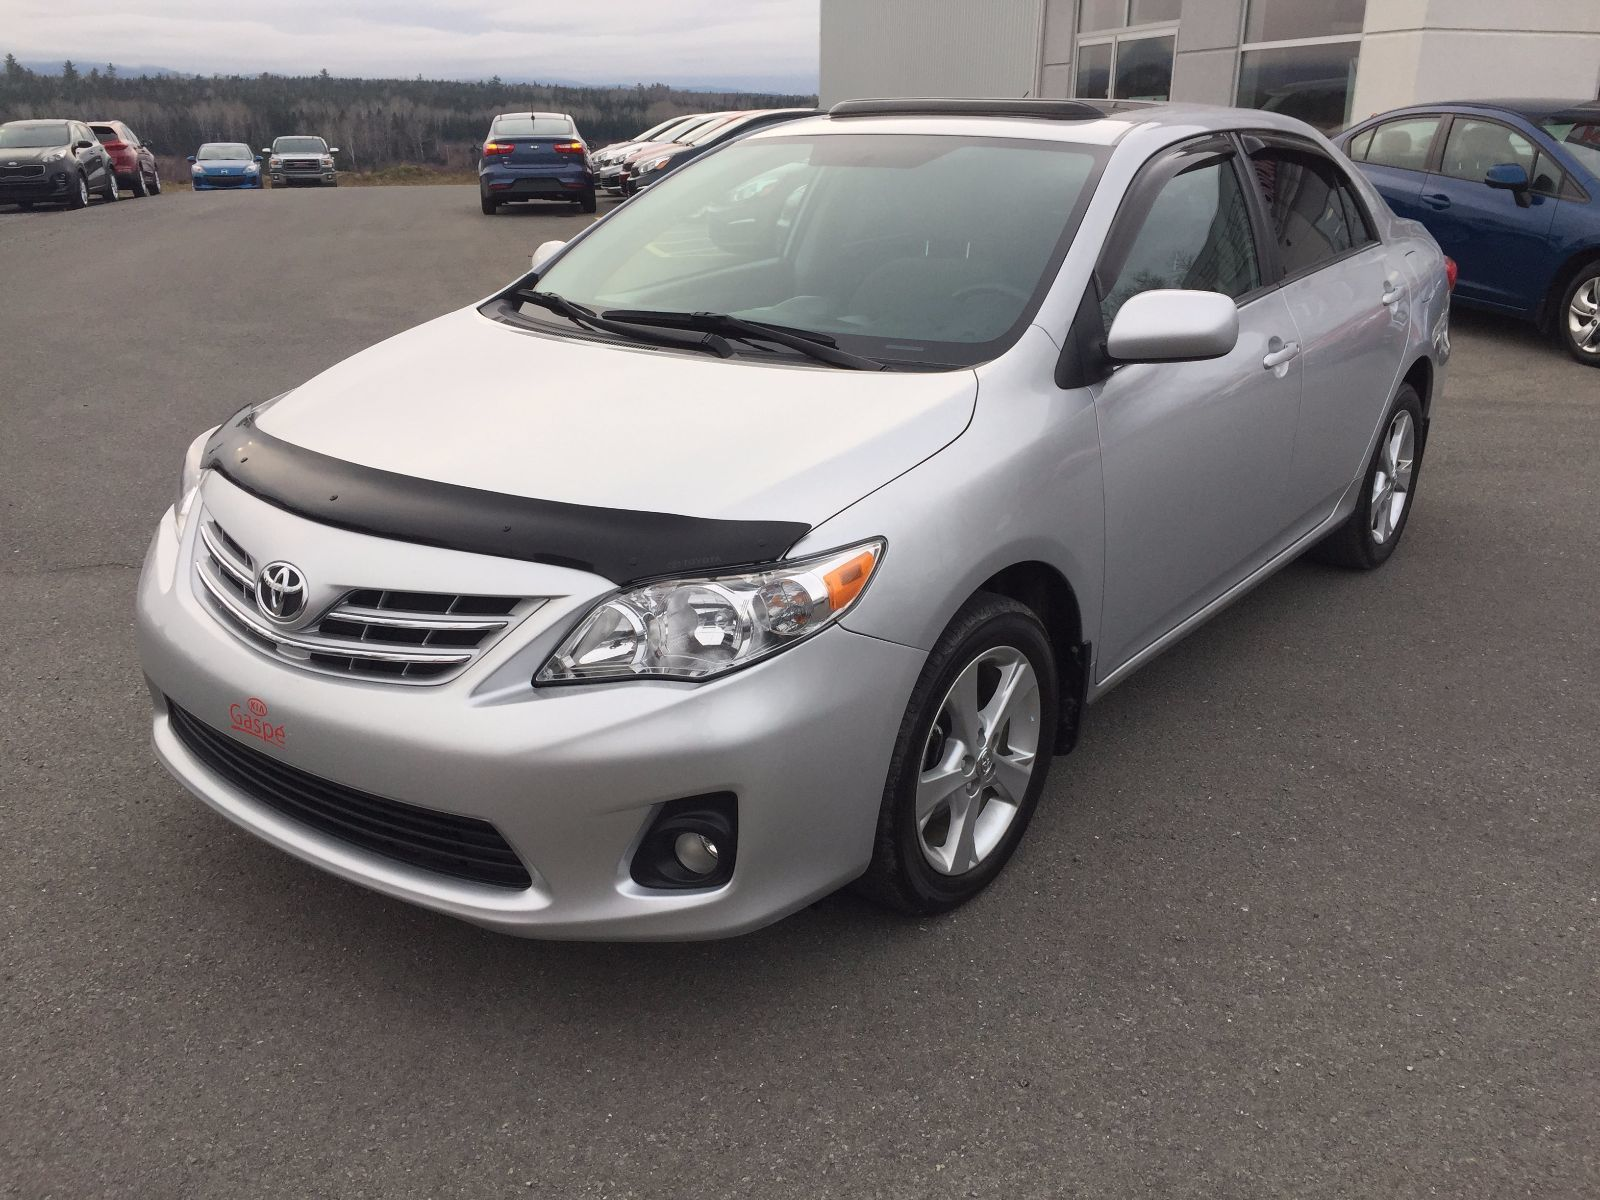 2013 toyota corolla le a c to t d 39 occasion gasp inventaire d 39 occasion mazda gasp gasp. Black Bedroom Furniture Sets. Home Design Ideas